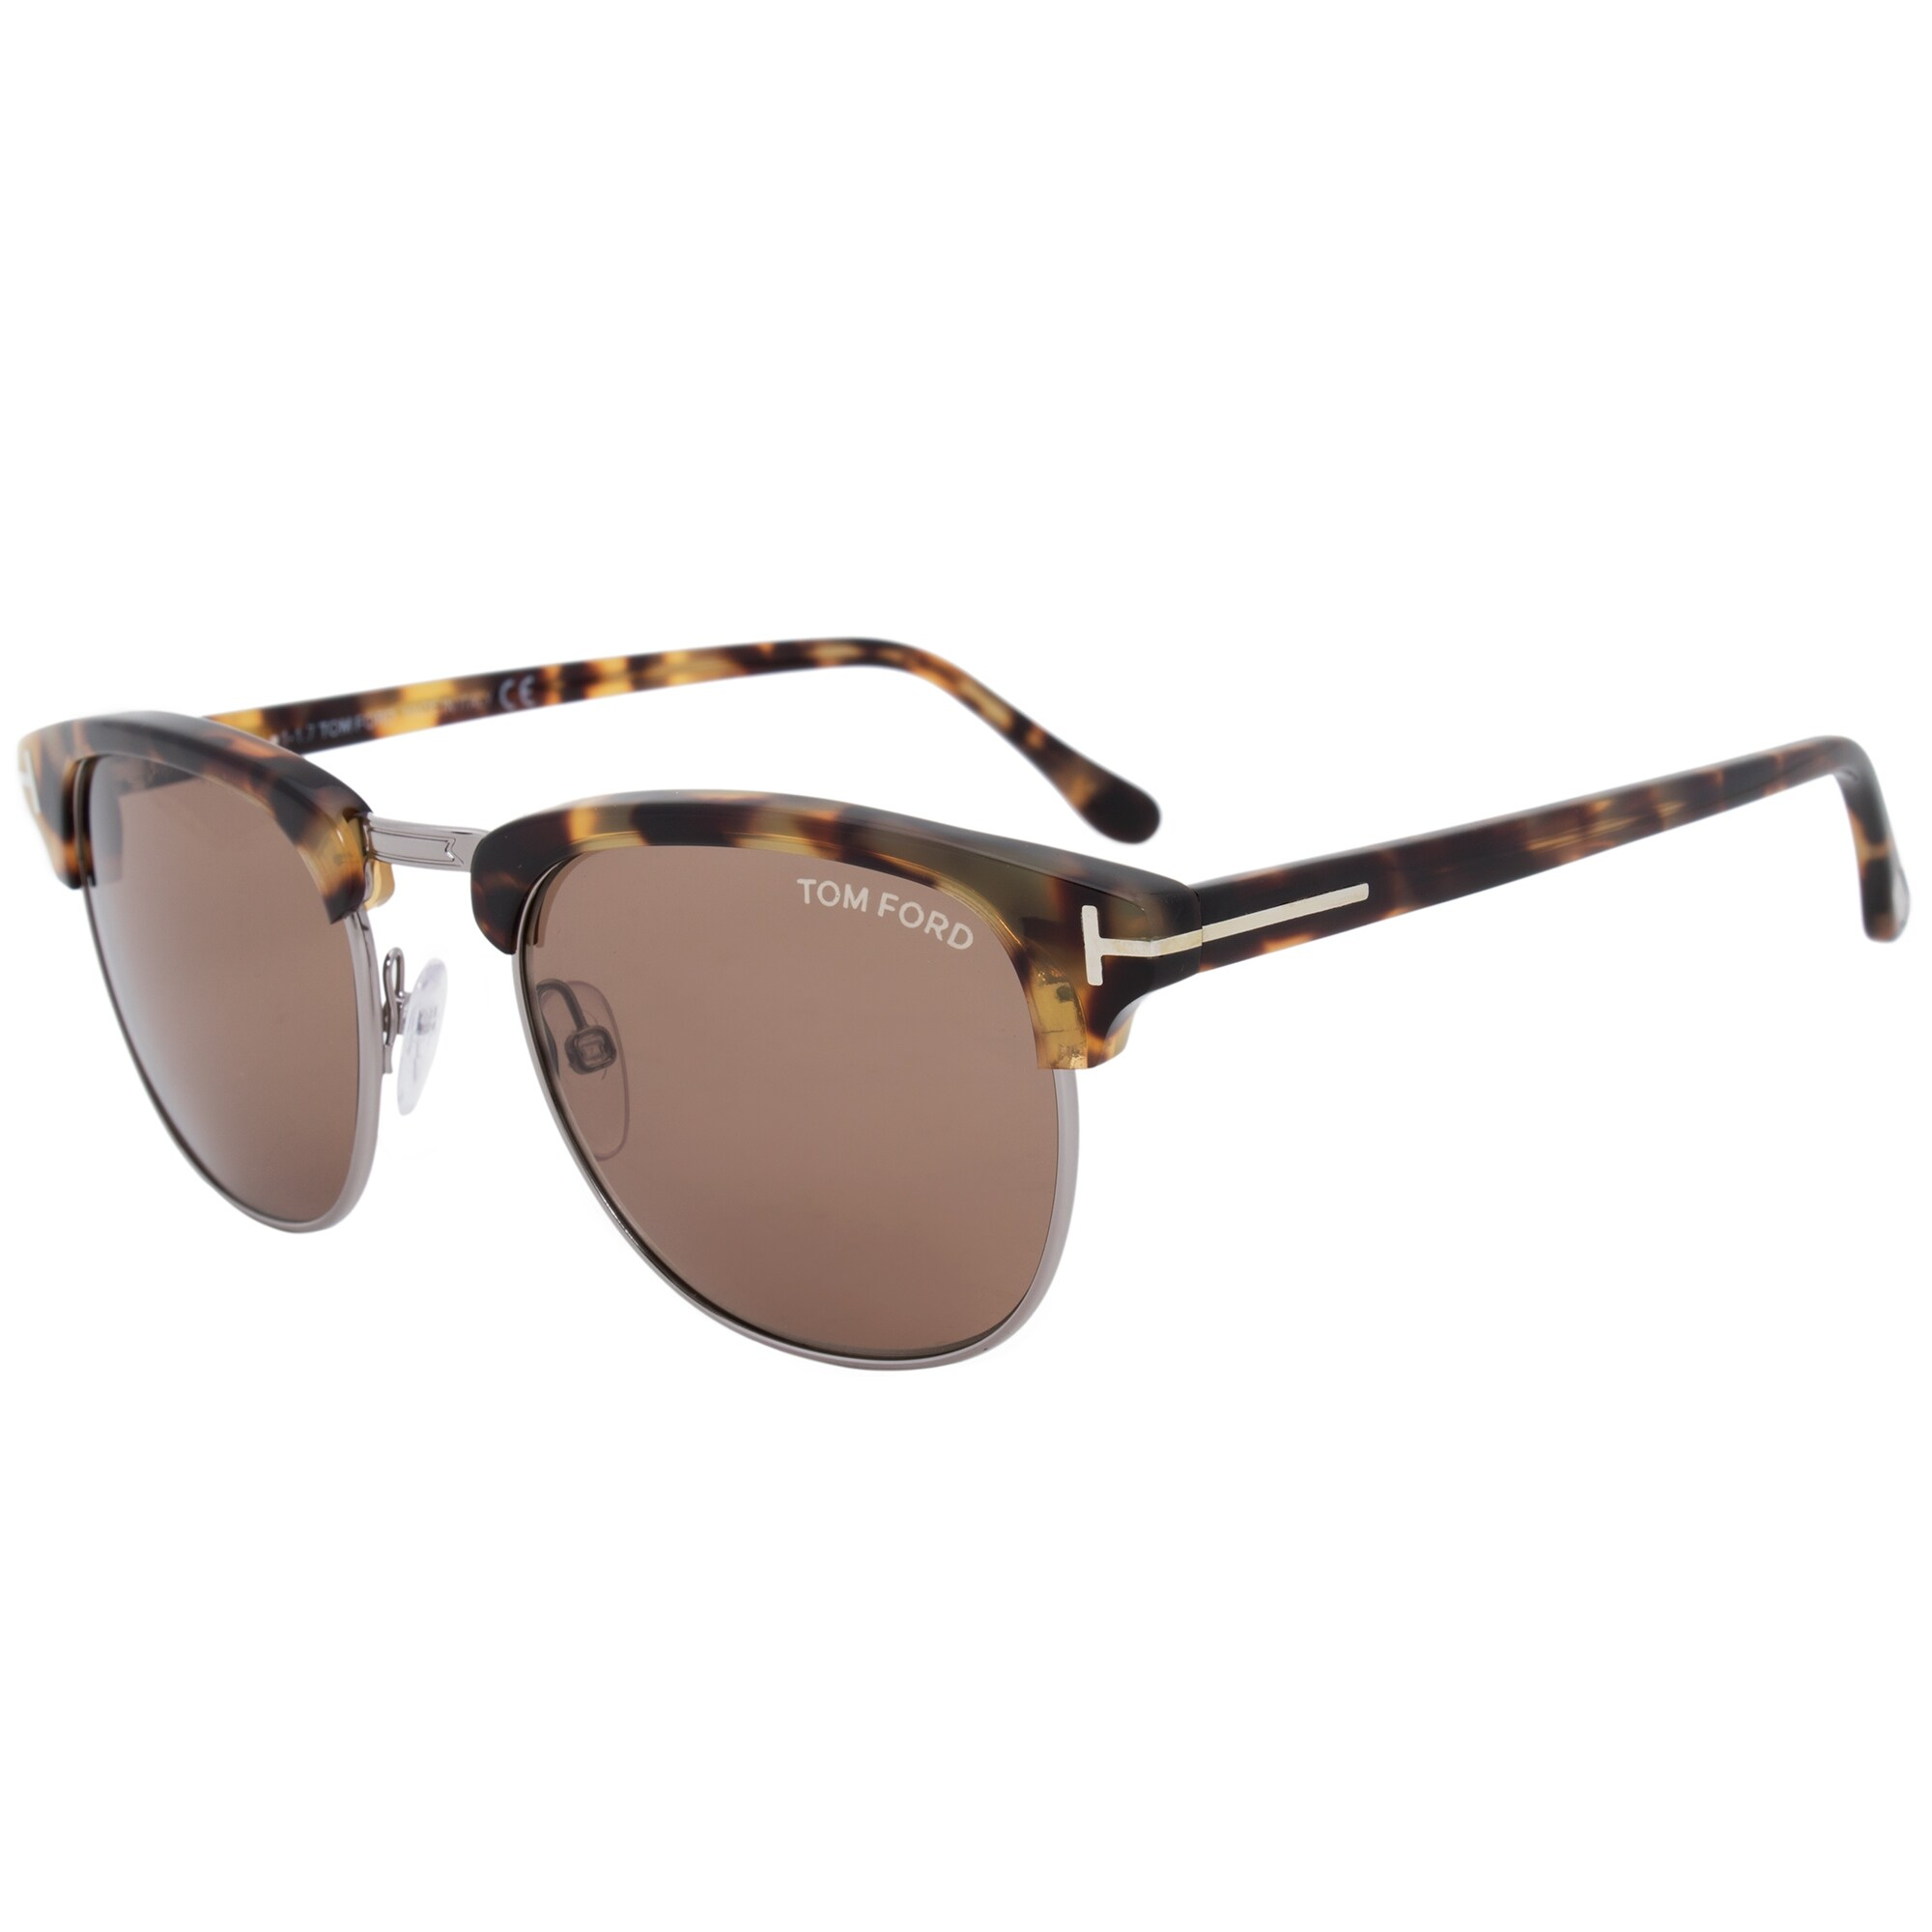 a9e7f98efcc76 Shop Tom Ford Henry Square Sunglasses FT0248 55J 53 - Free Shipping Today -  Overstock - 19622593